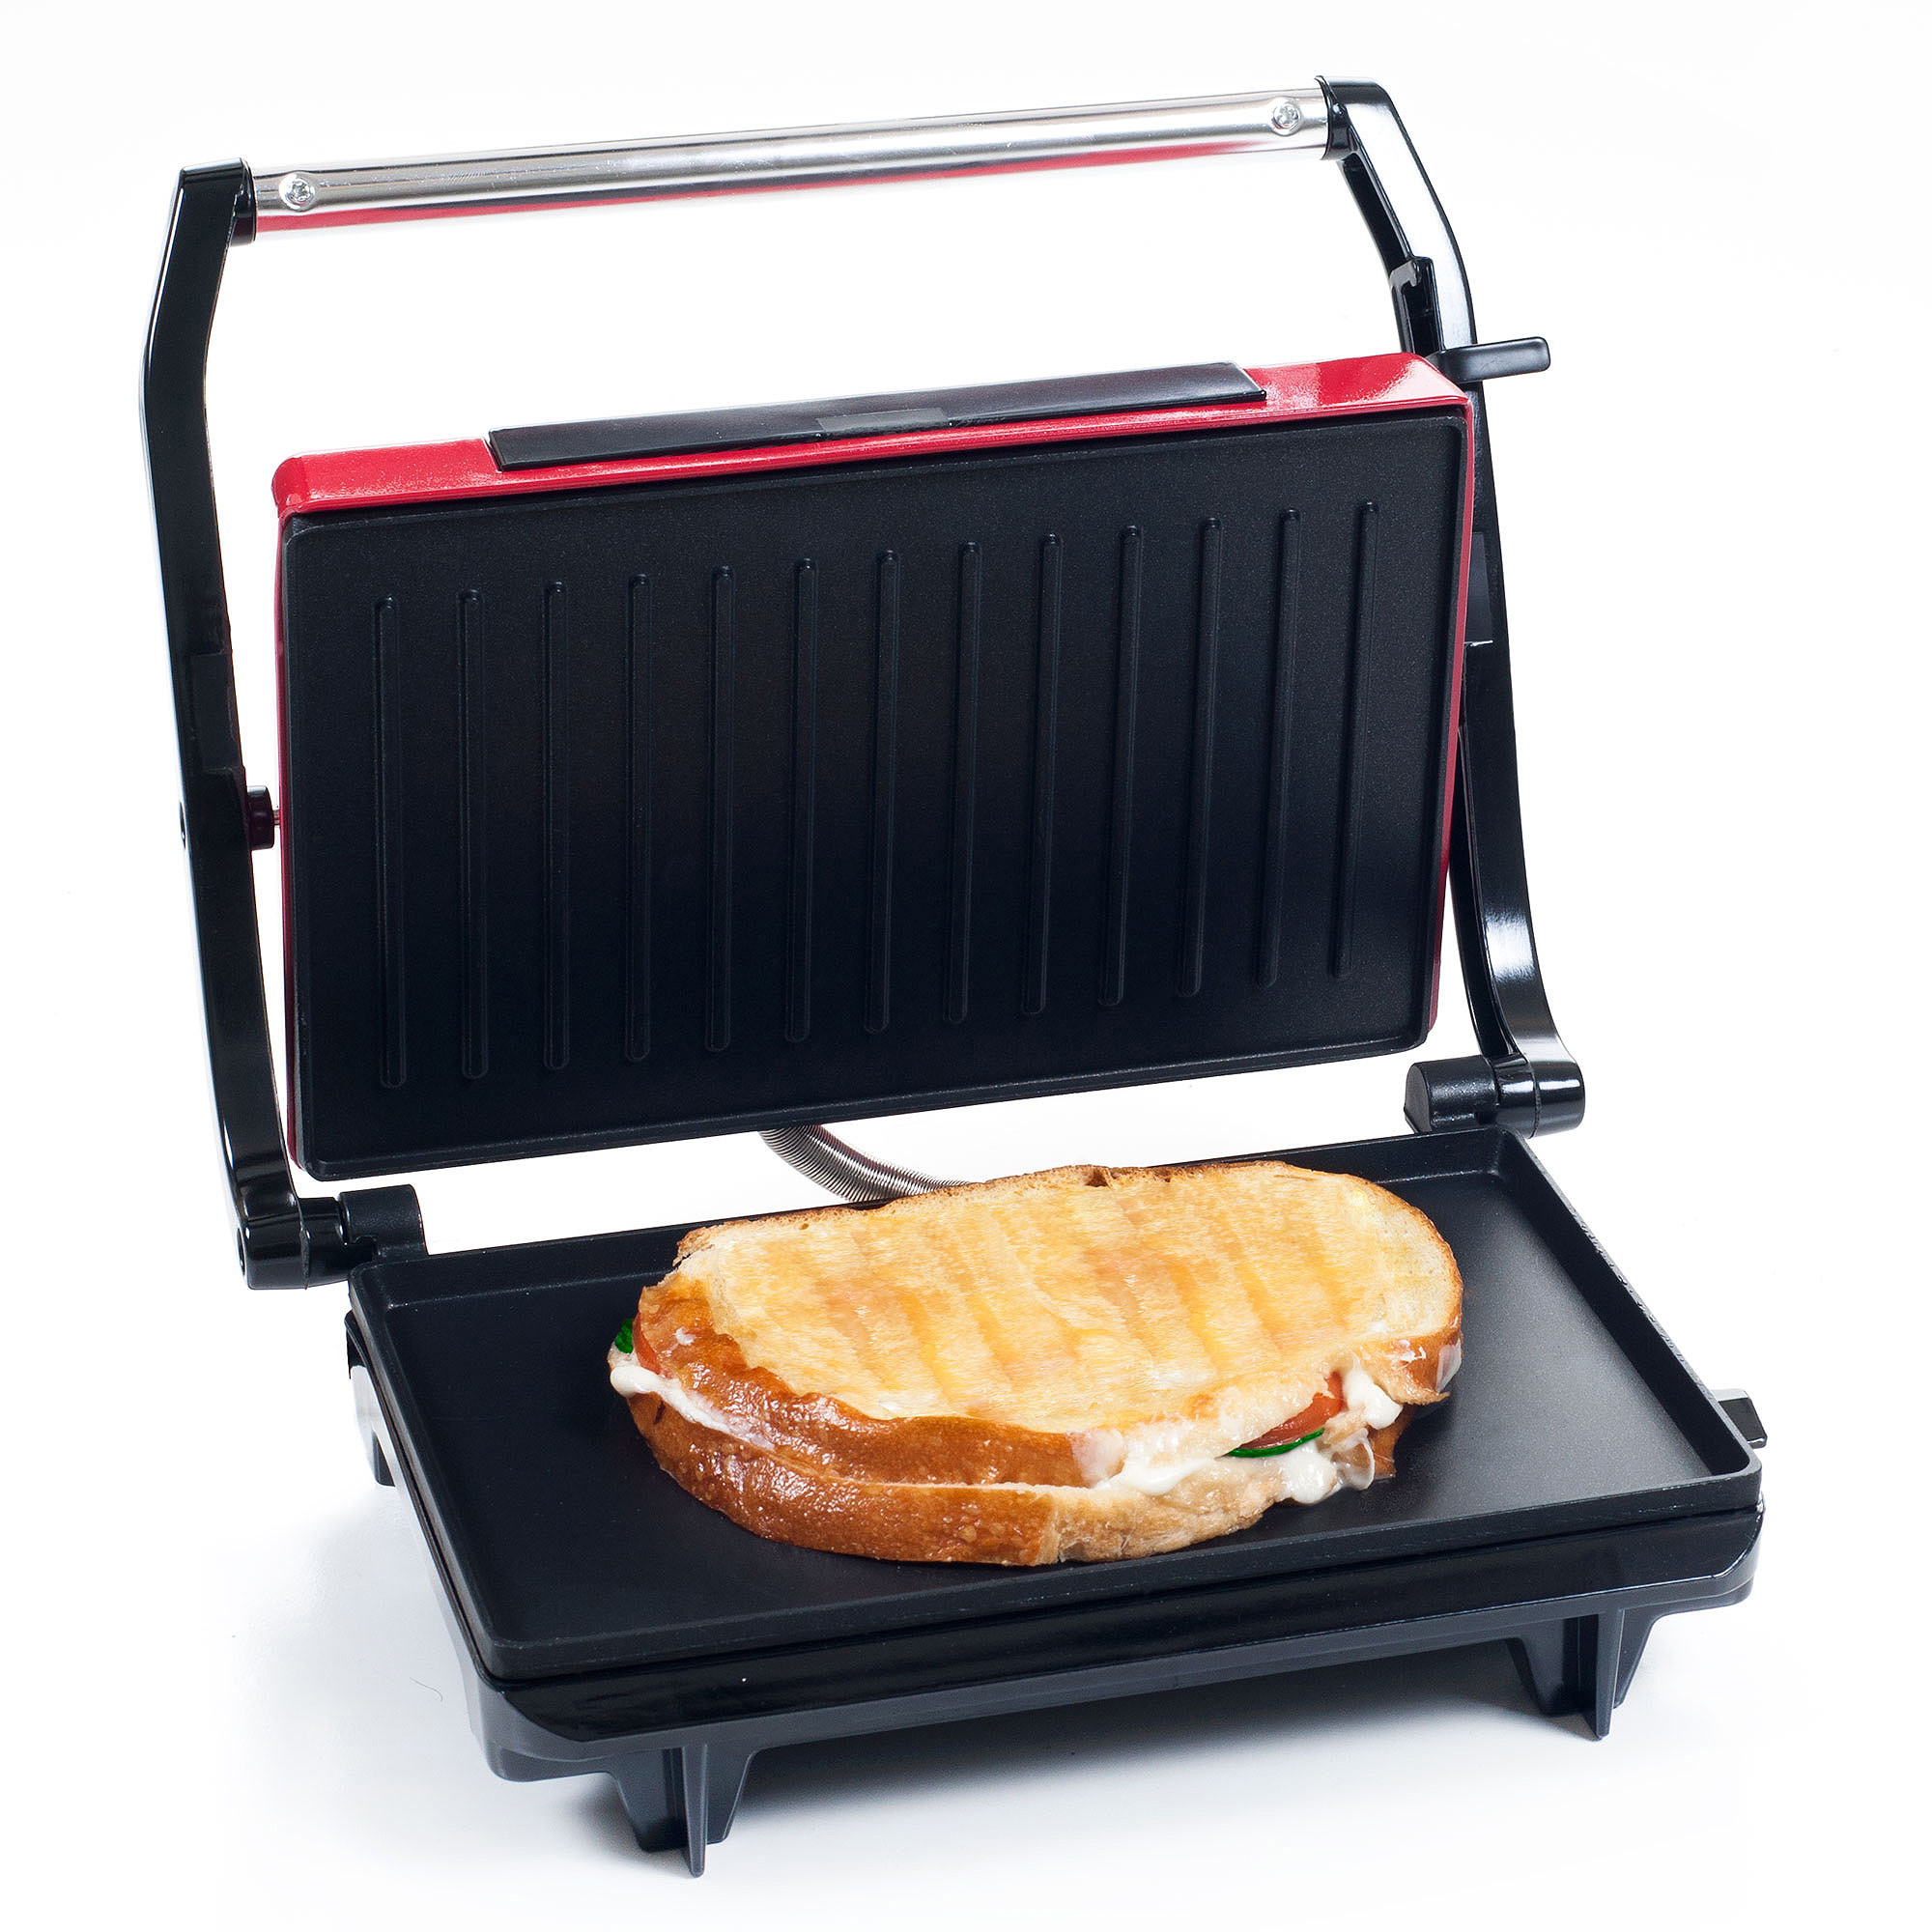 Chef Buddy Non-Stick Grill and Panini Press, Red